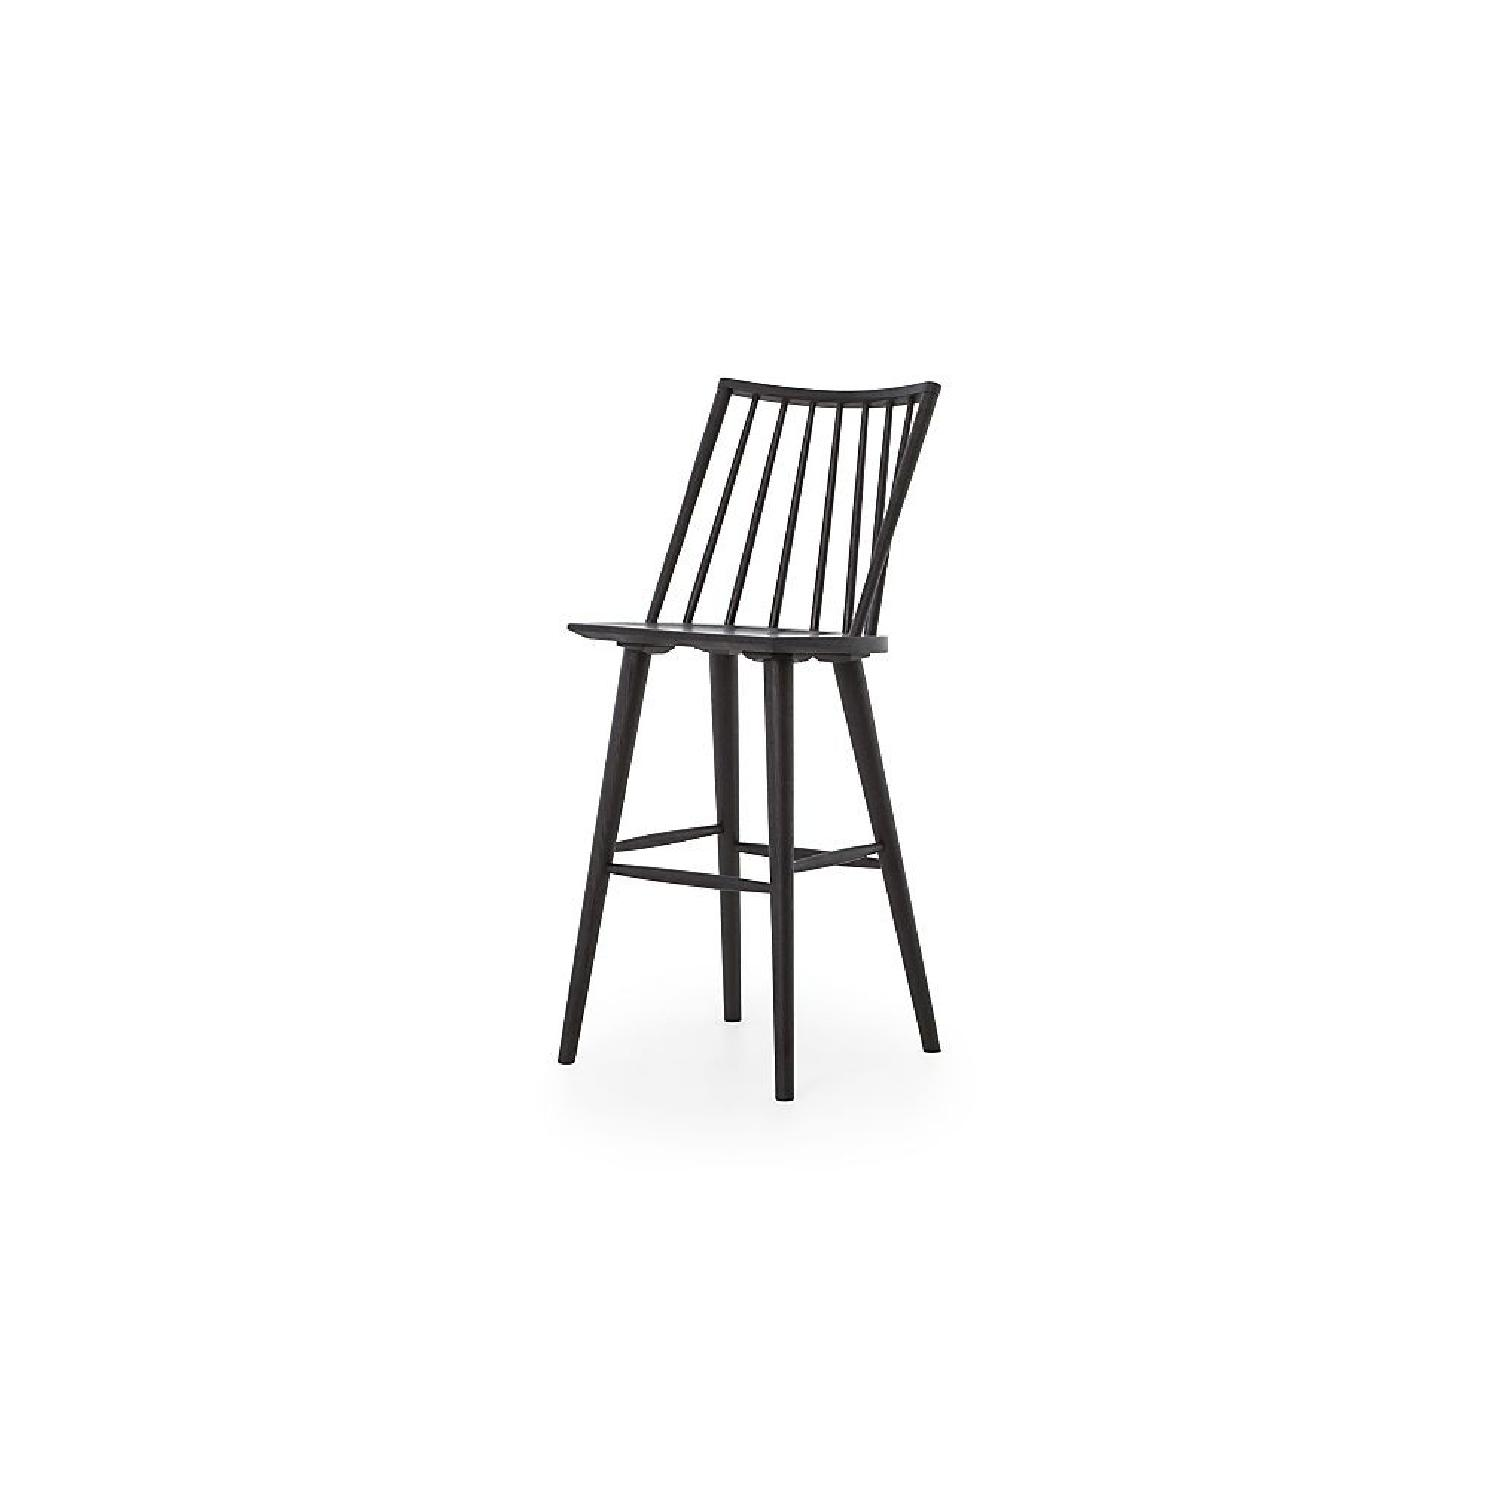 Crate & Barrel Modern Black Oak Windsor Bar Stool - image-0